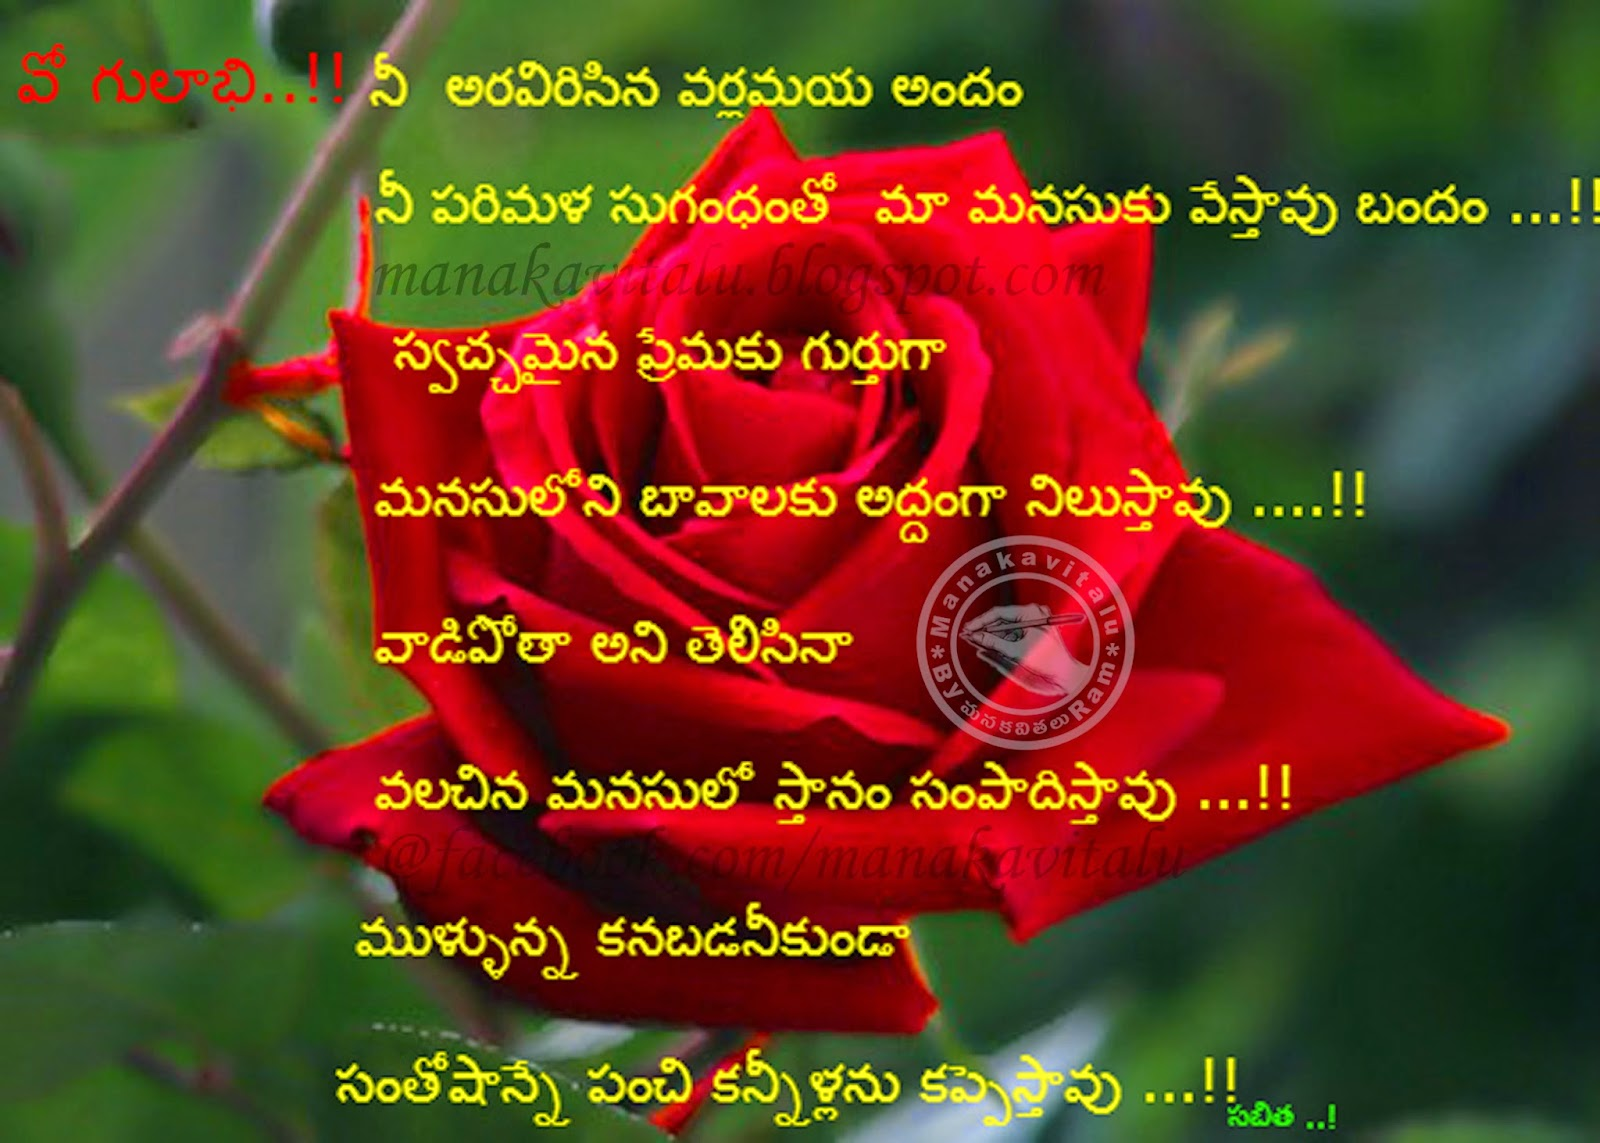 Telugu quote rose images by Manakavitalu